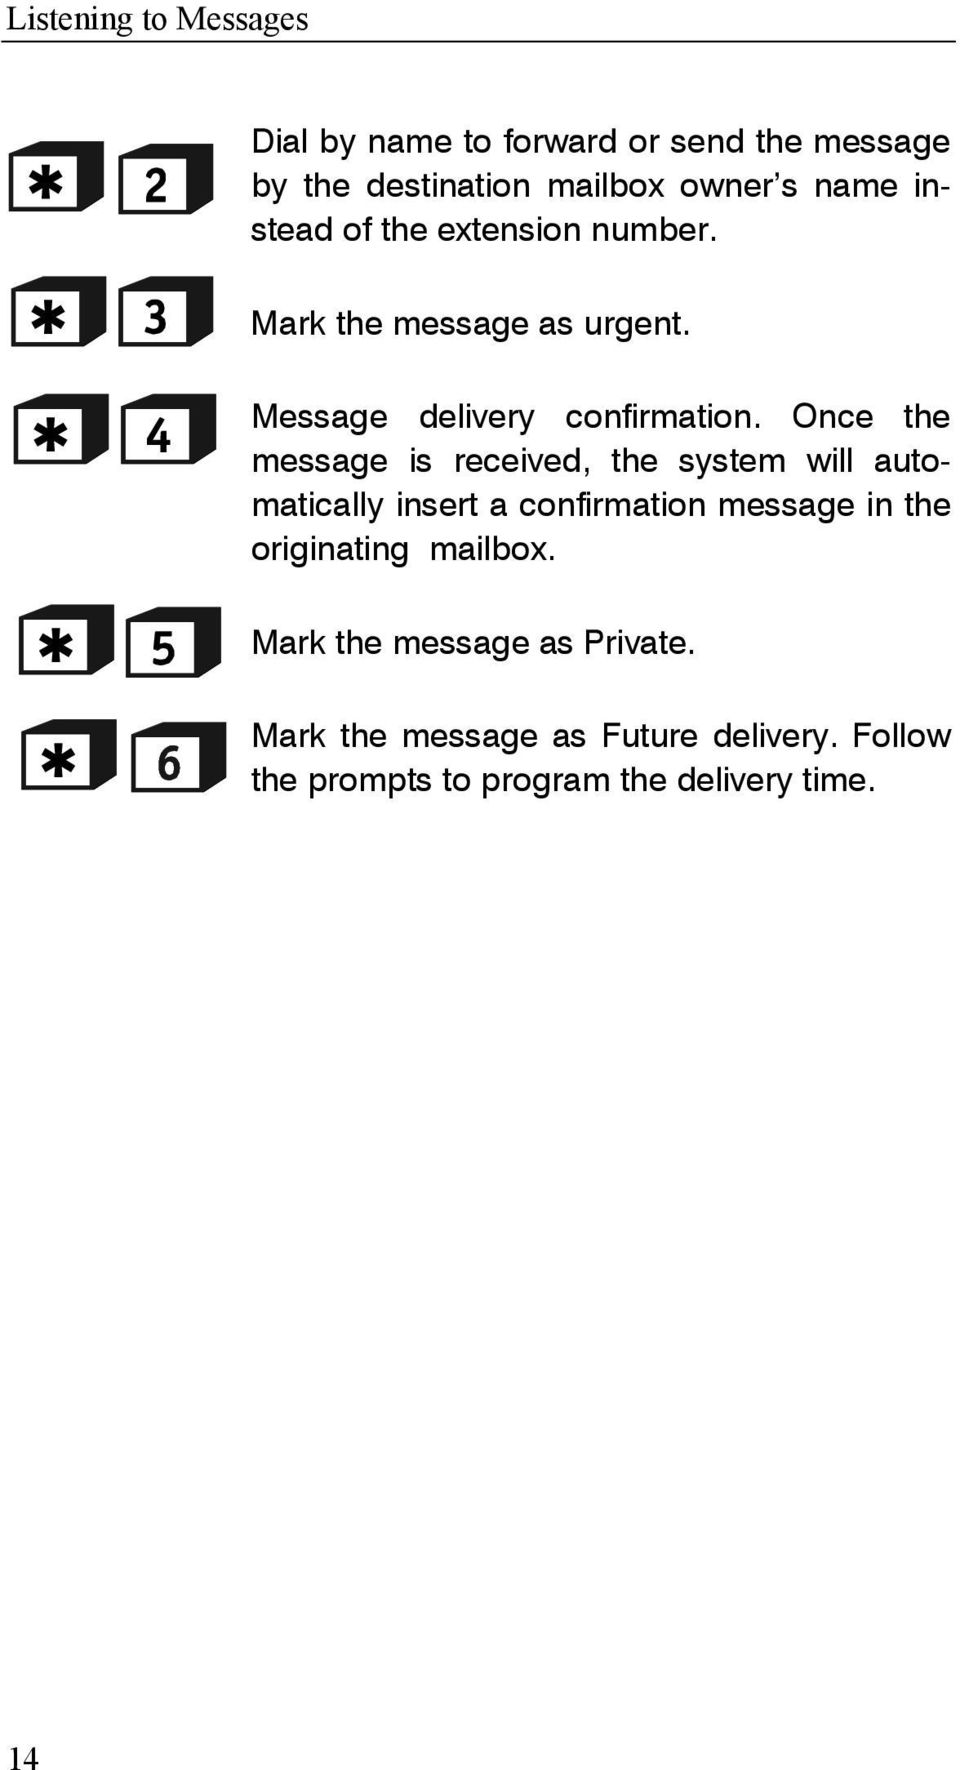 Once the message is received, the system will automatically insert a confirmation message in the originating